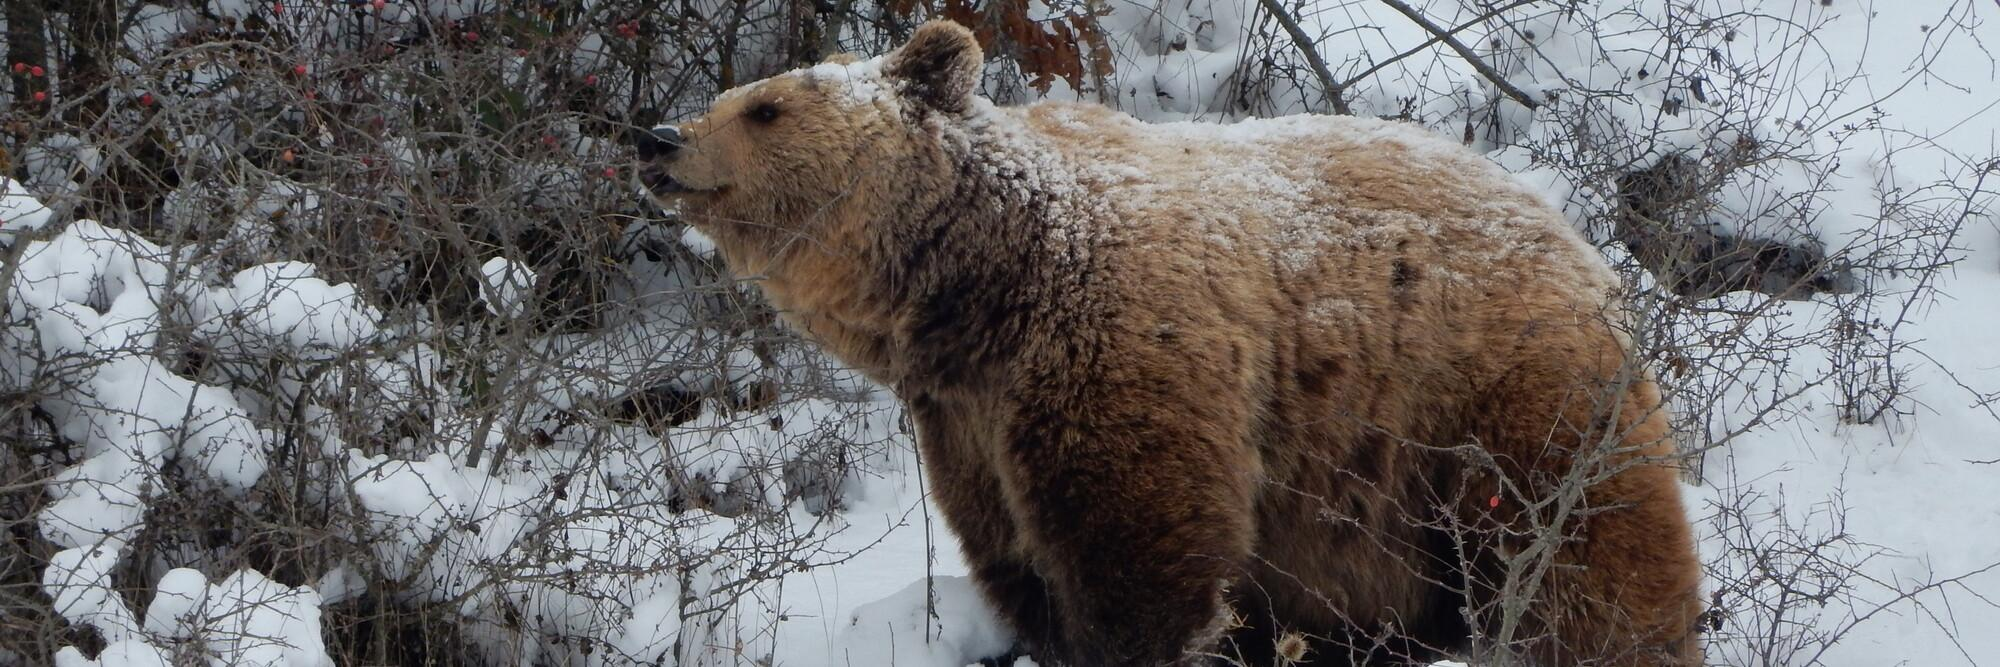 Bears in the winter snow